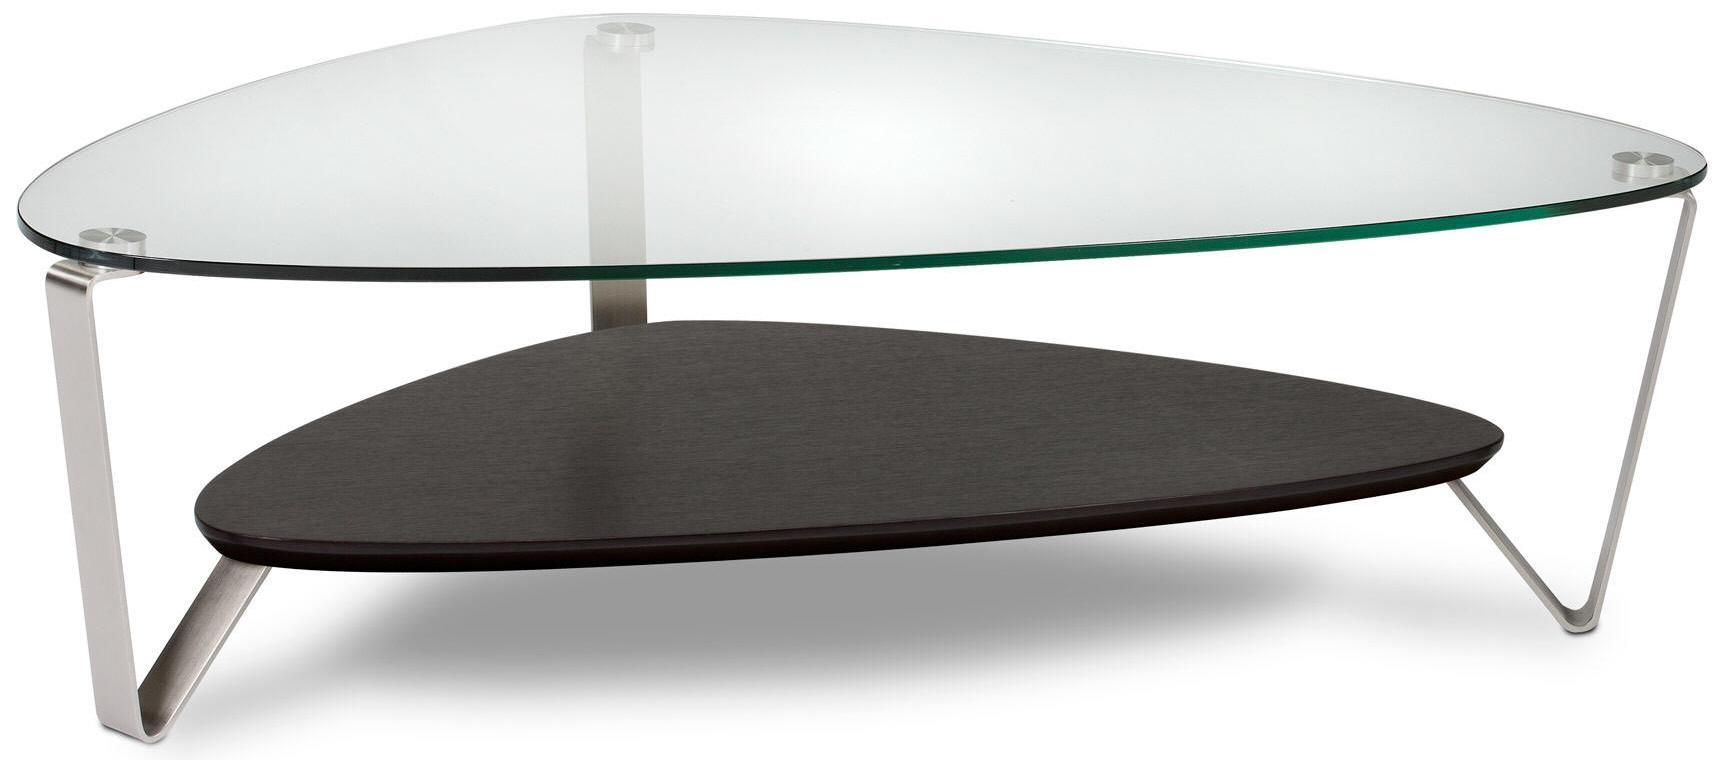 Dino Large Cocktail Table by BDI at Upper Room Home Furnishings